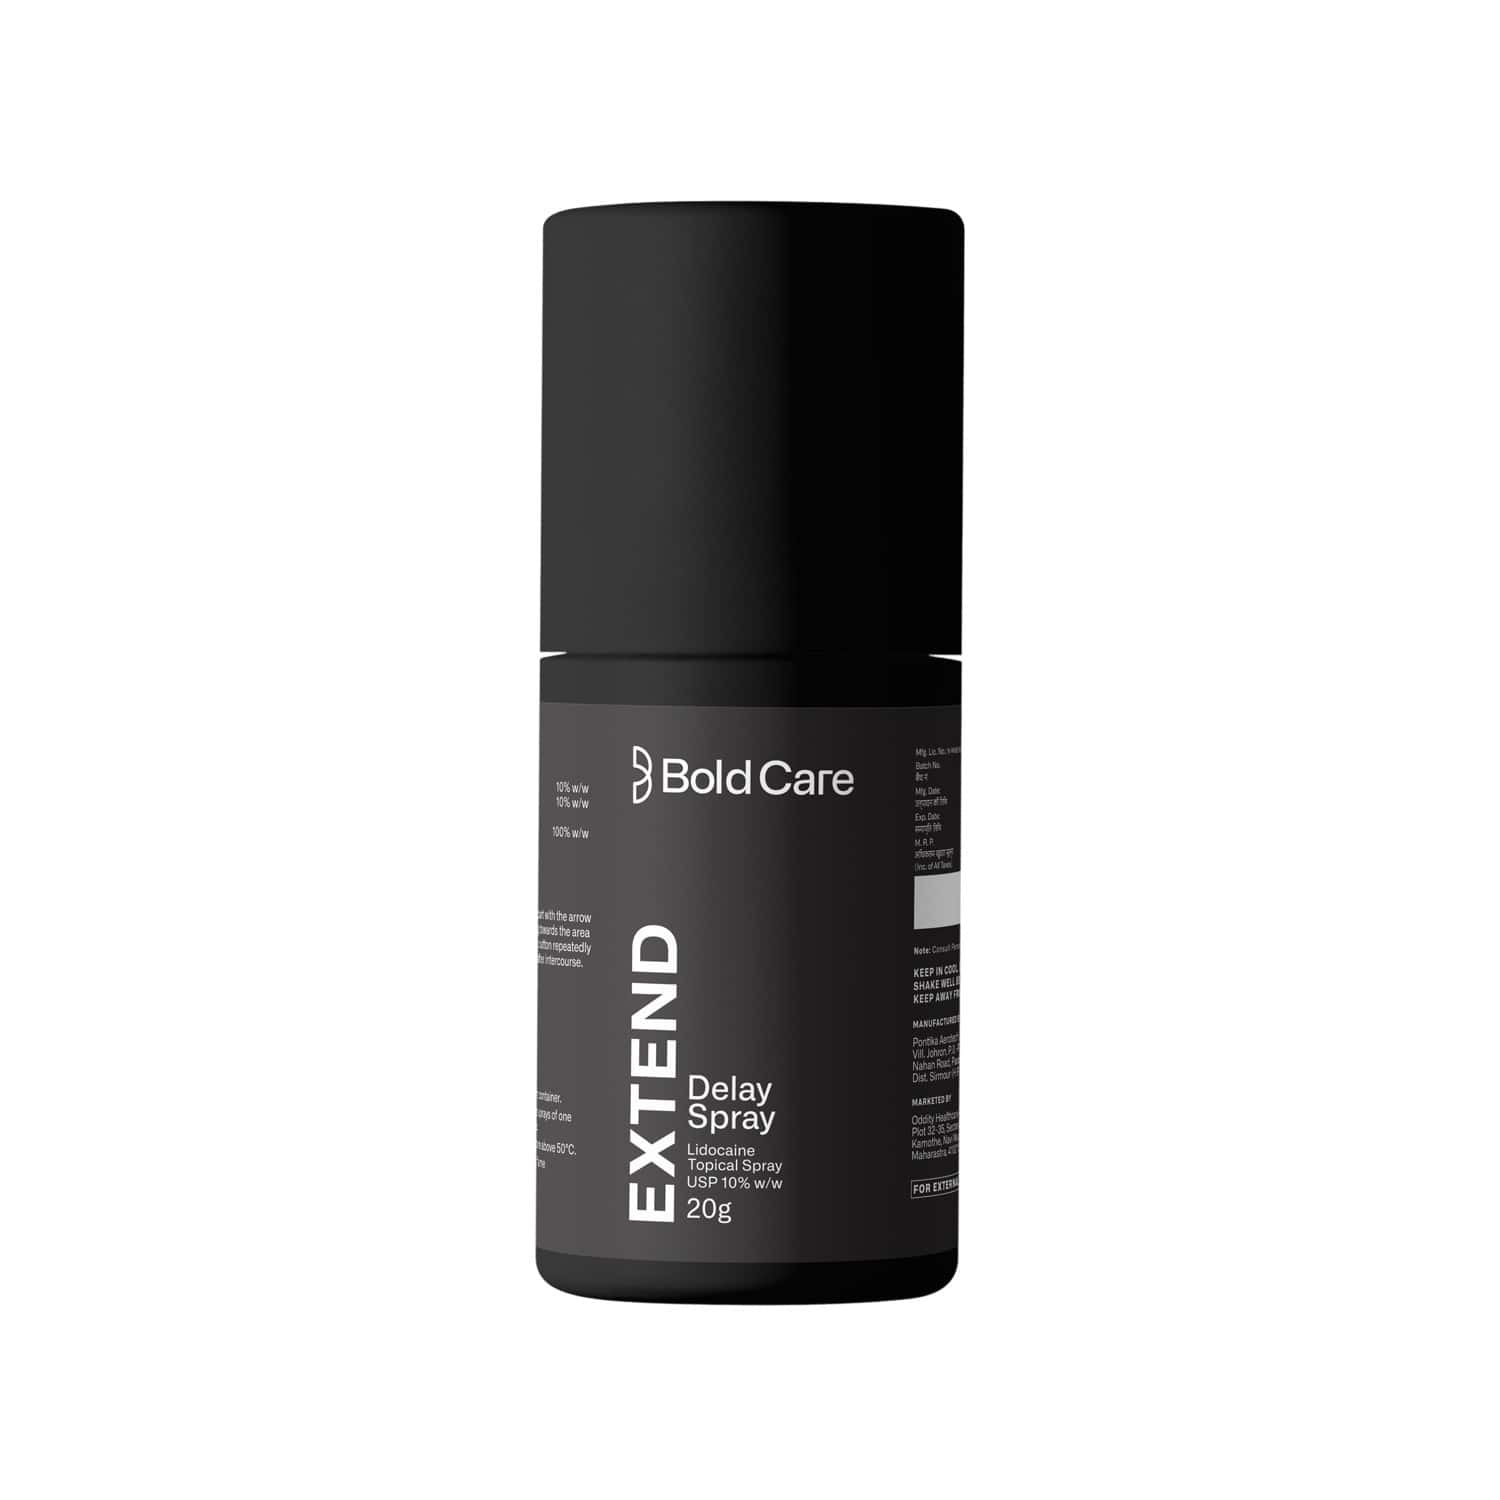 Bold Care Extend Delay Spray For Men - With Lidocaine 10% (20g)